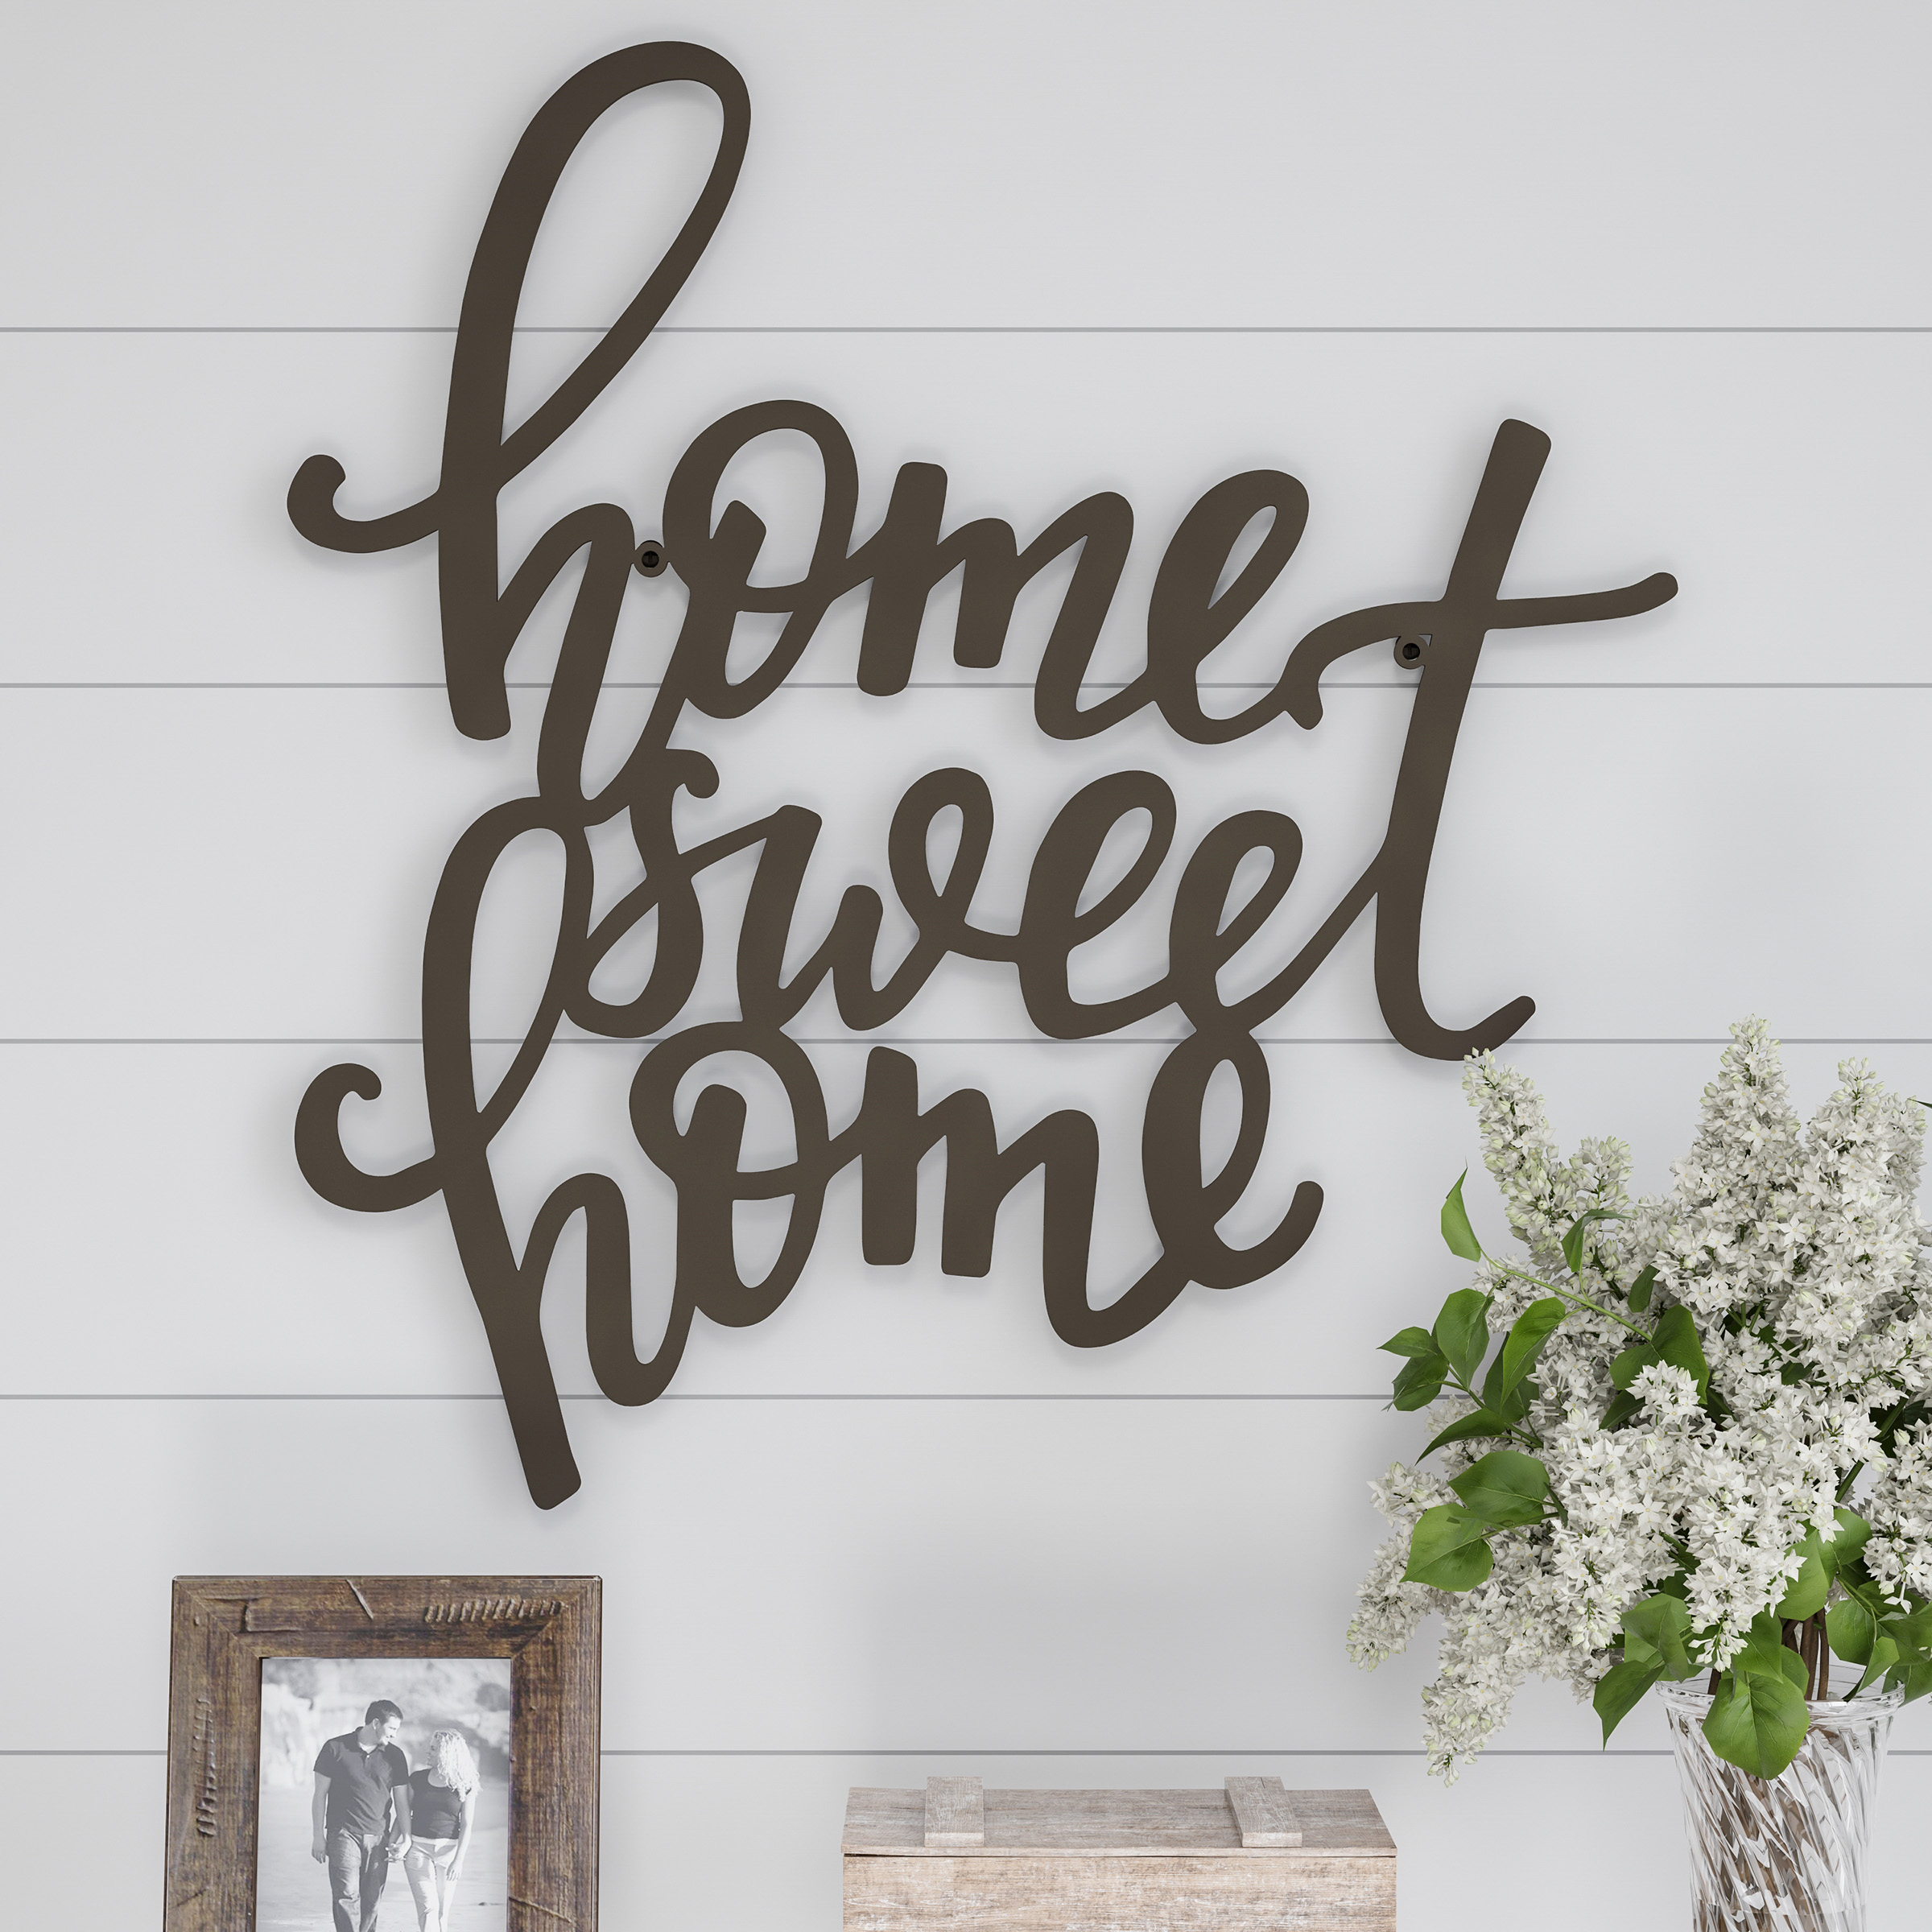 Metal Cutout Home Sweet Home Decorative Wall Sign 3d Word Art Home Accent Decor Perfect For Modern Rustic Or Vintage Farmhouse Stylelavish Home Throughout Laser Engraved Home Sweet Home Wall Decor (View 21 of 30)